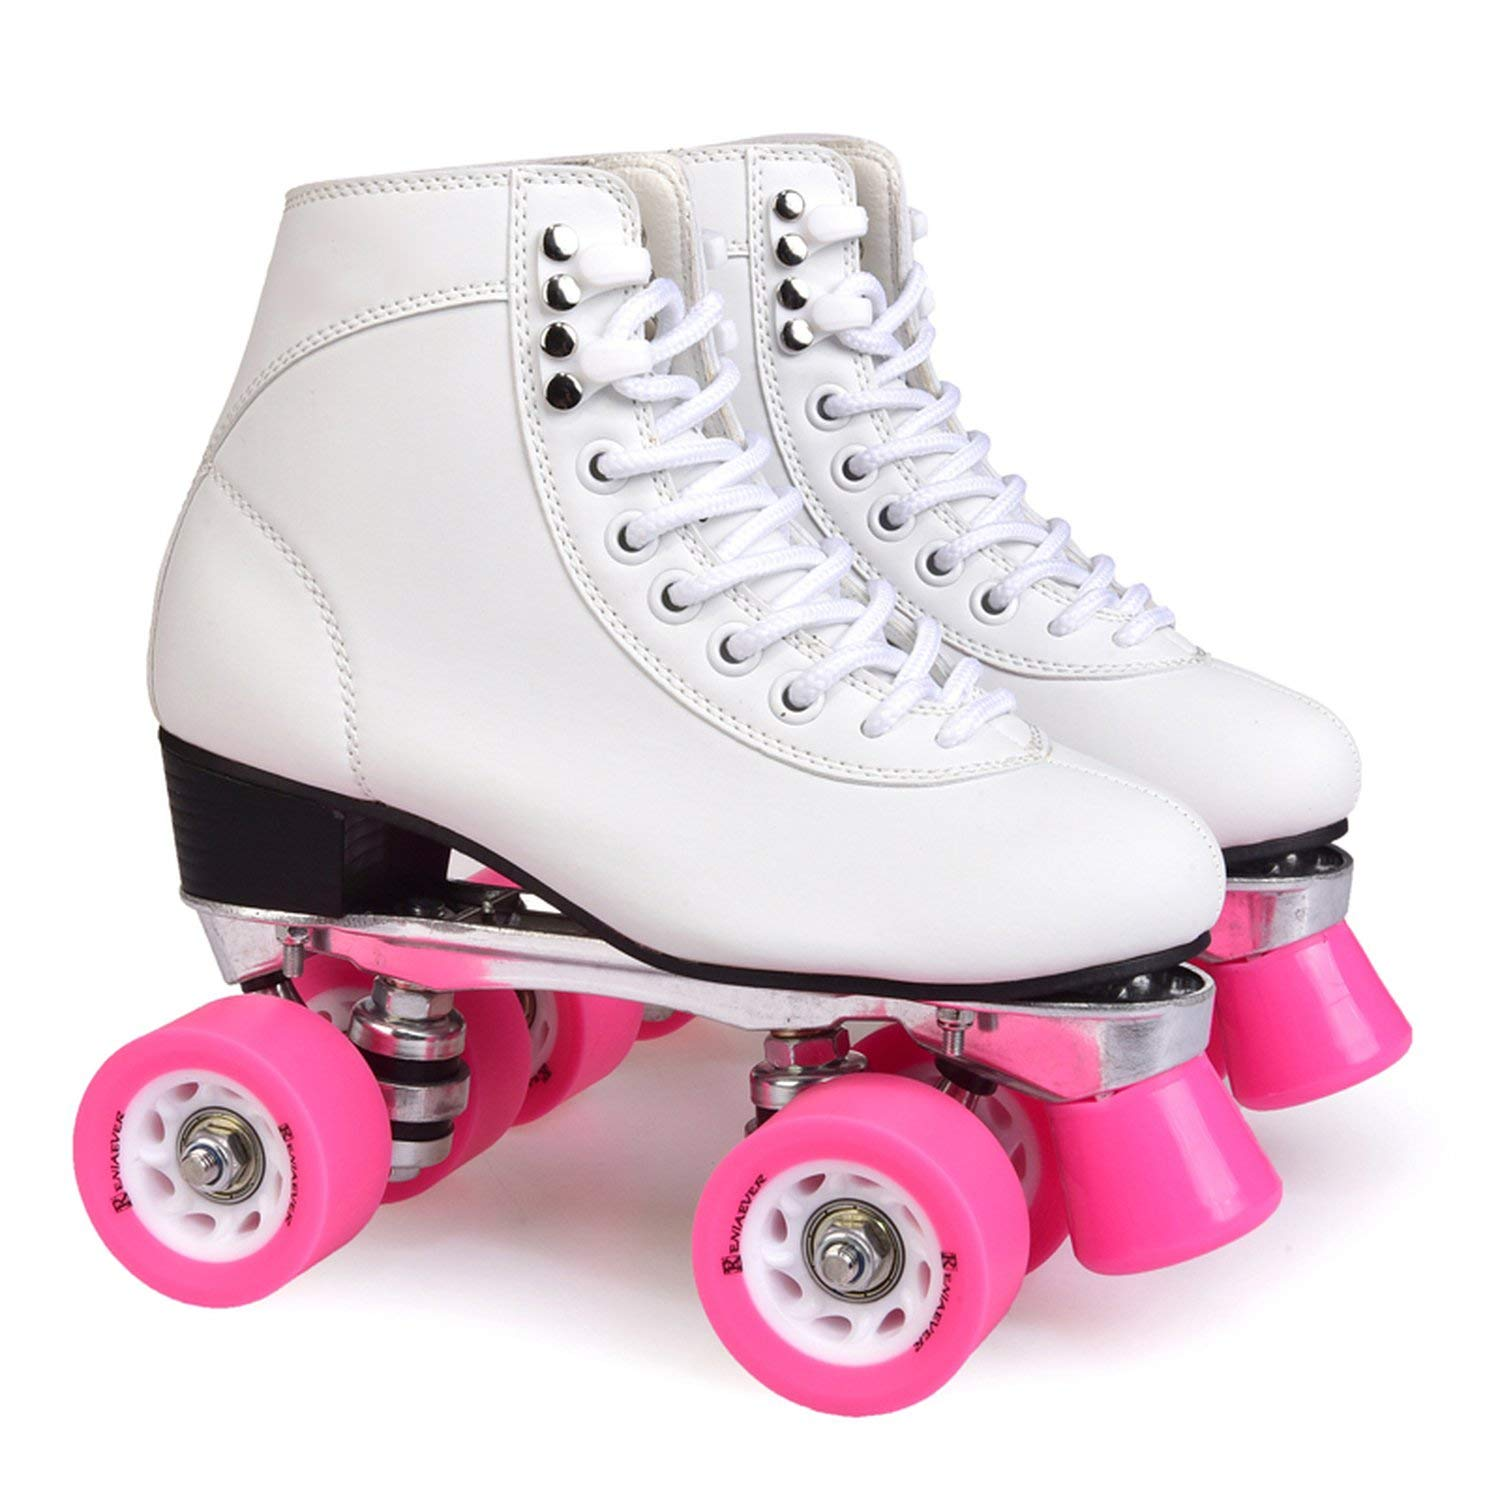 Roller Skate Women's 4 Wheels Skating Style Speed Skate Ride The Street for Outdoor Skate Shoe White and Pink